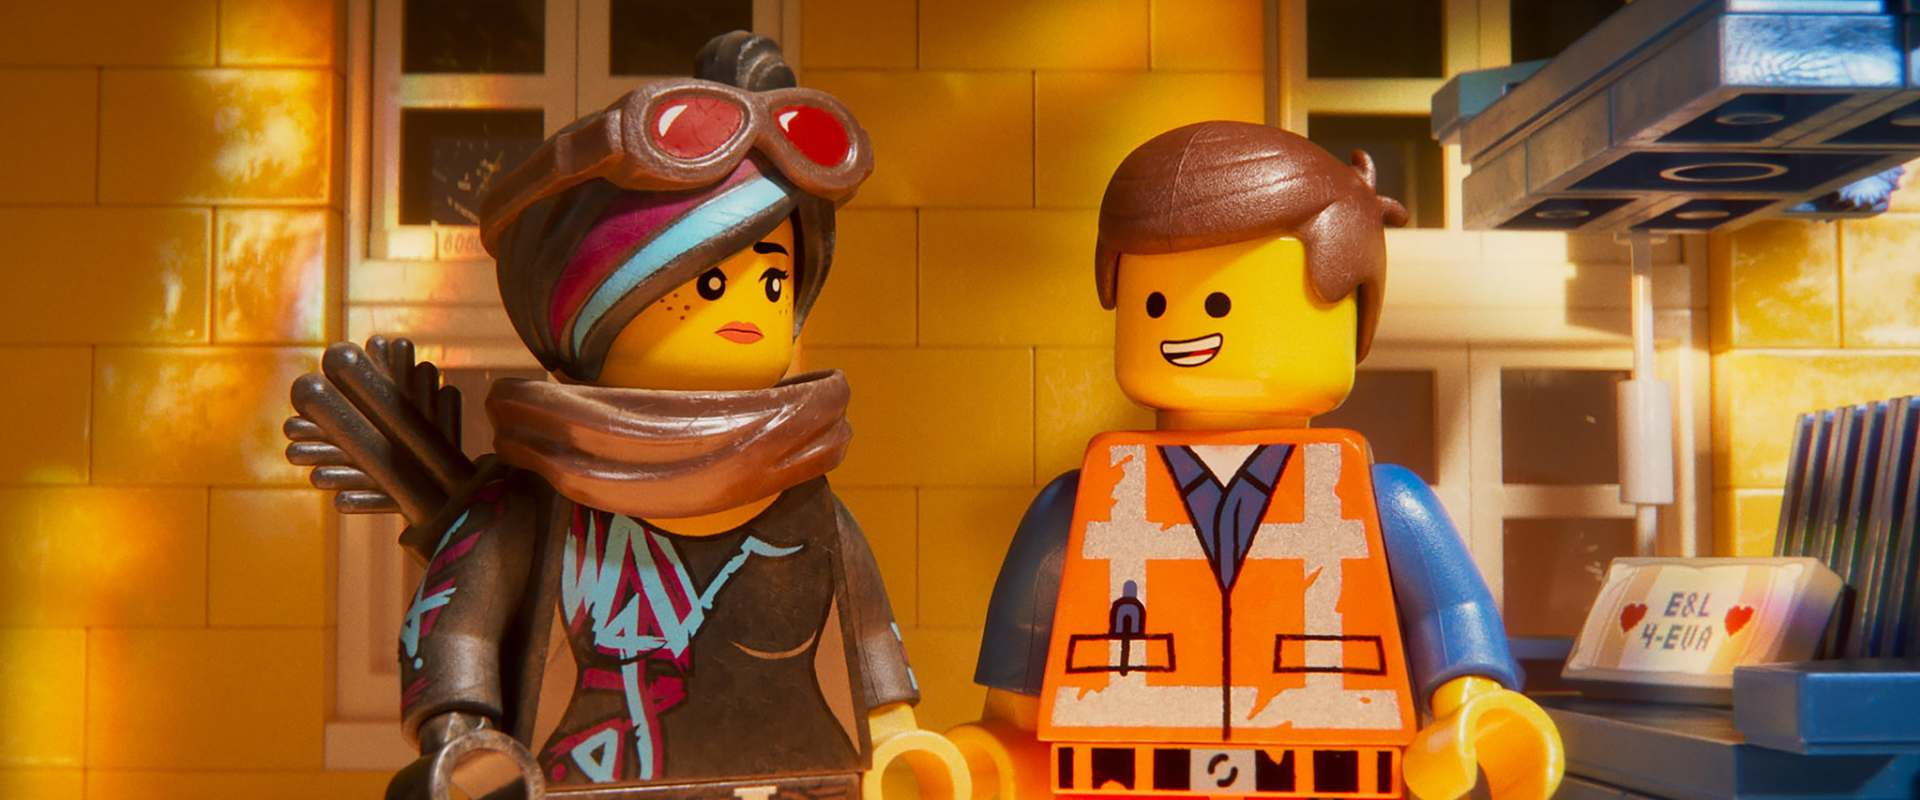 The Lego Movie 2: The Second Part background 2